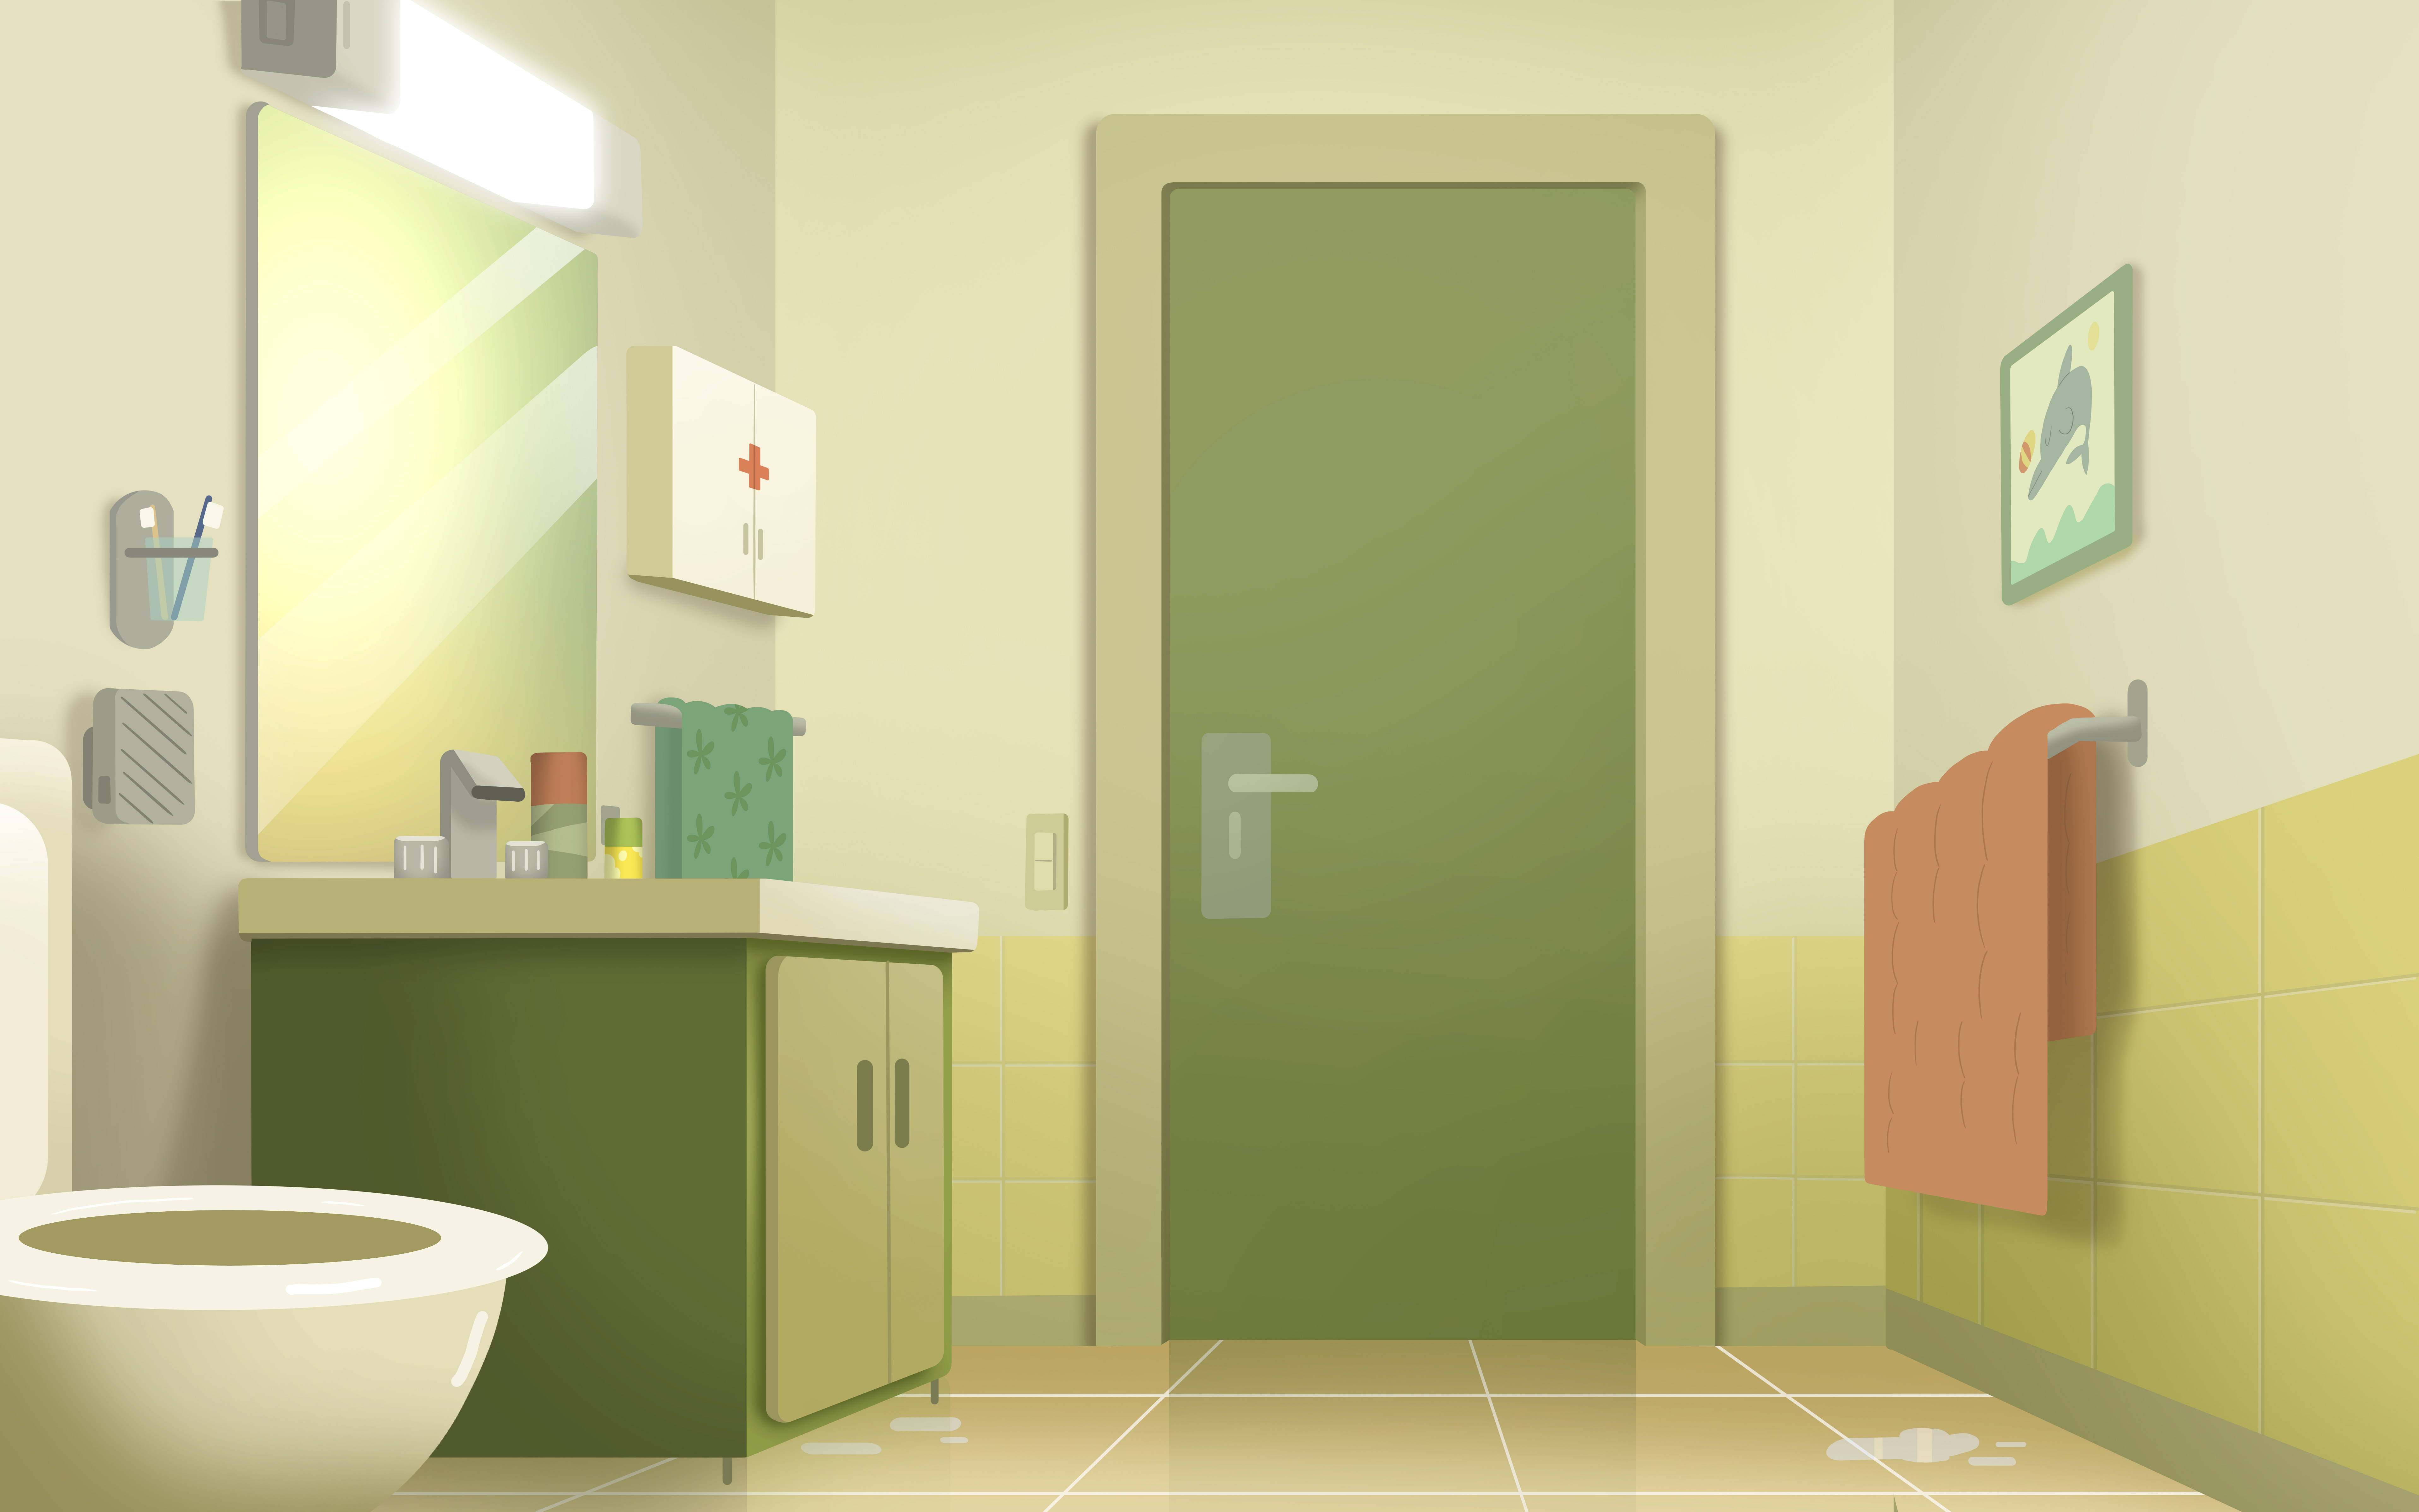 PNKY_020_sc112_PinkyBathroomIntB_color